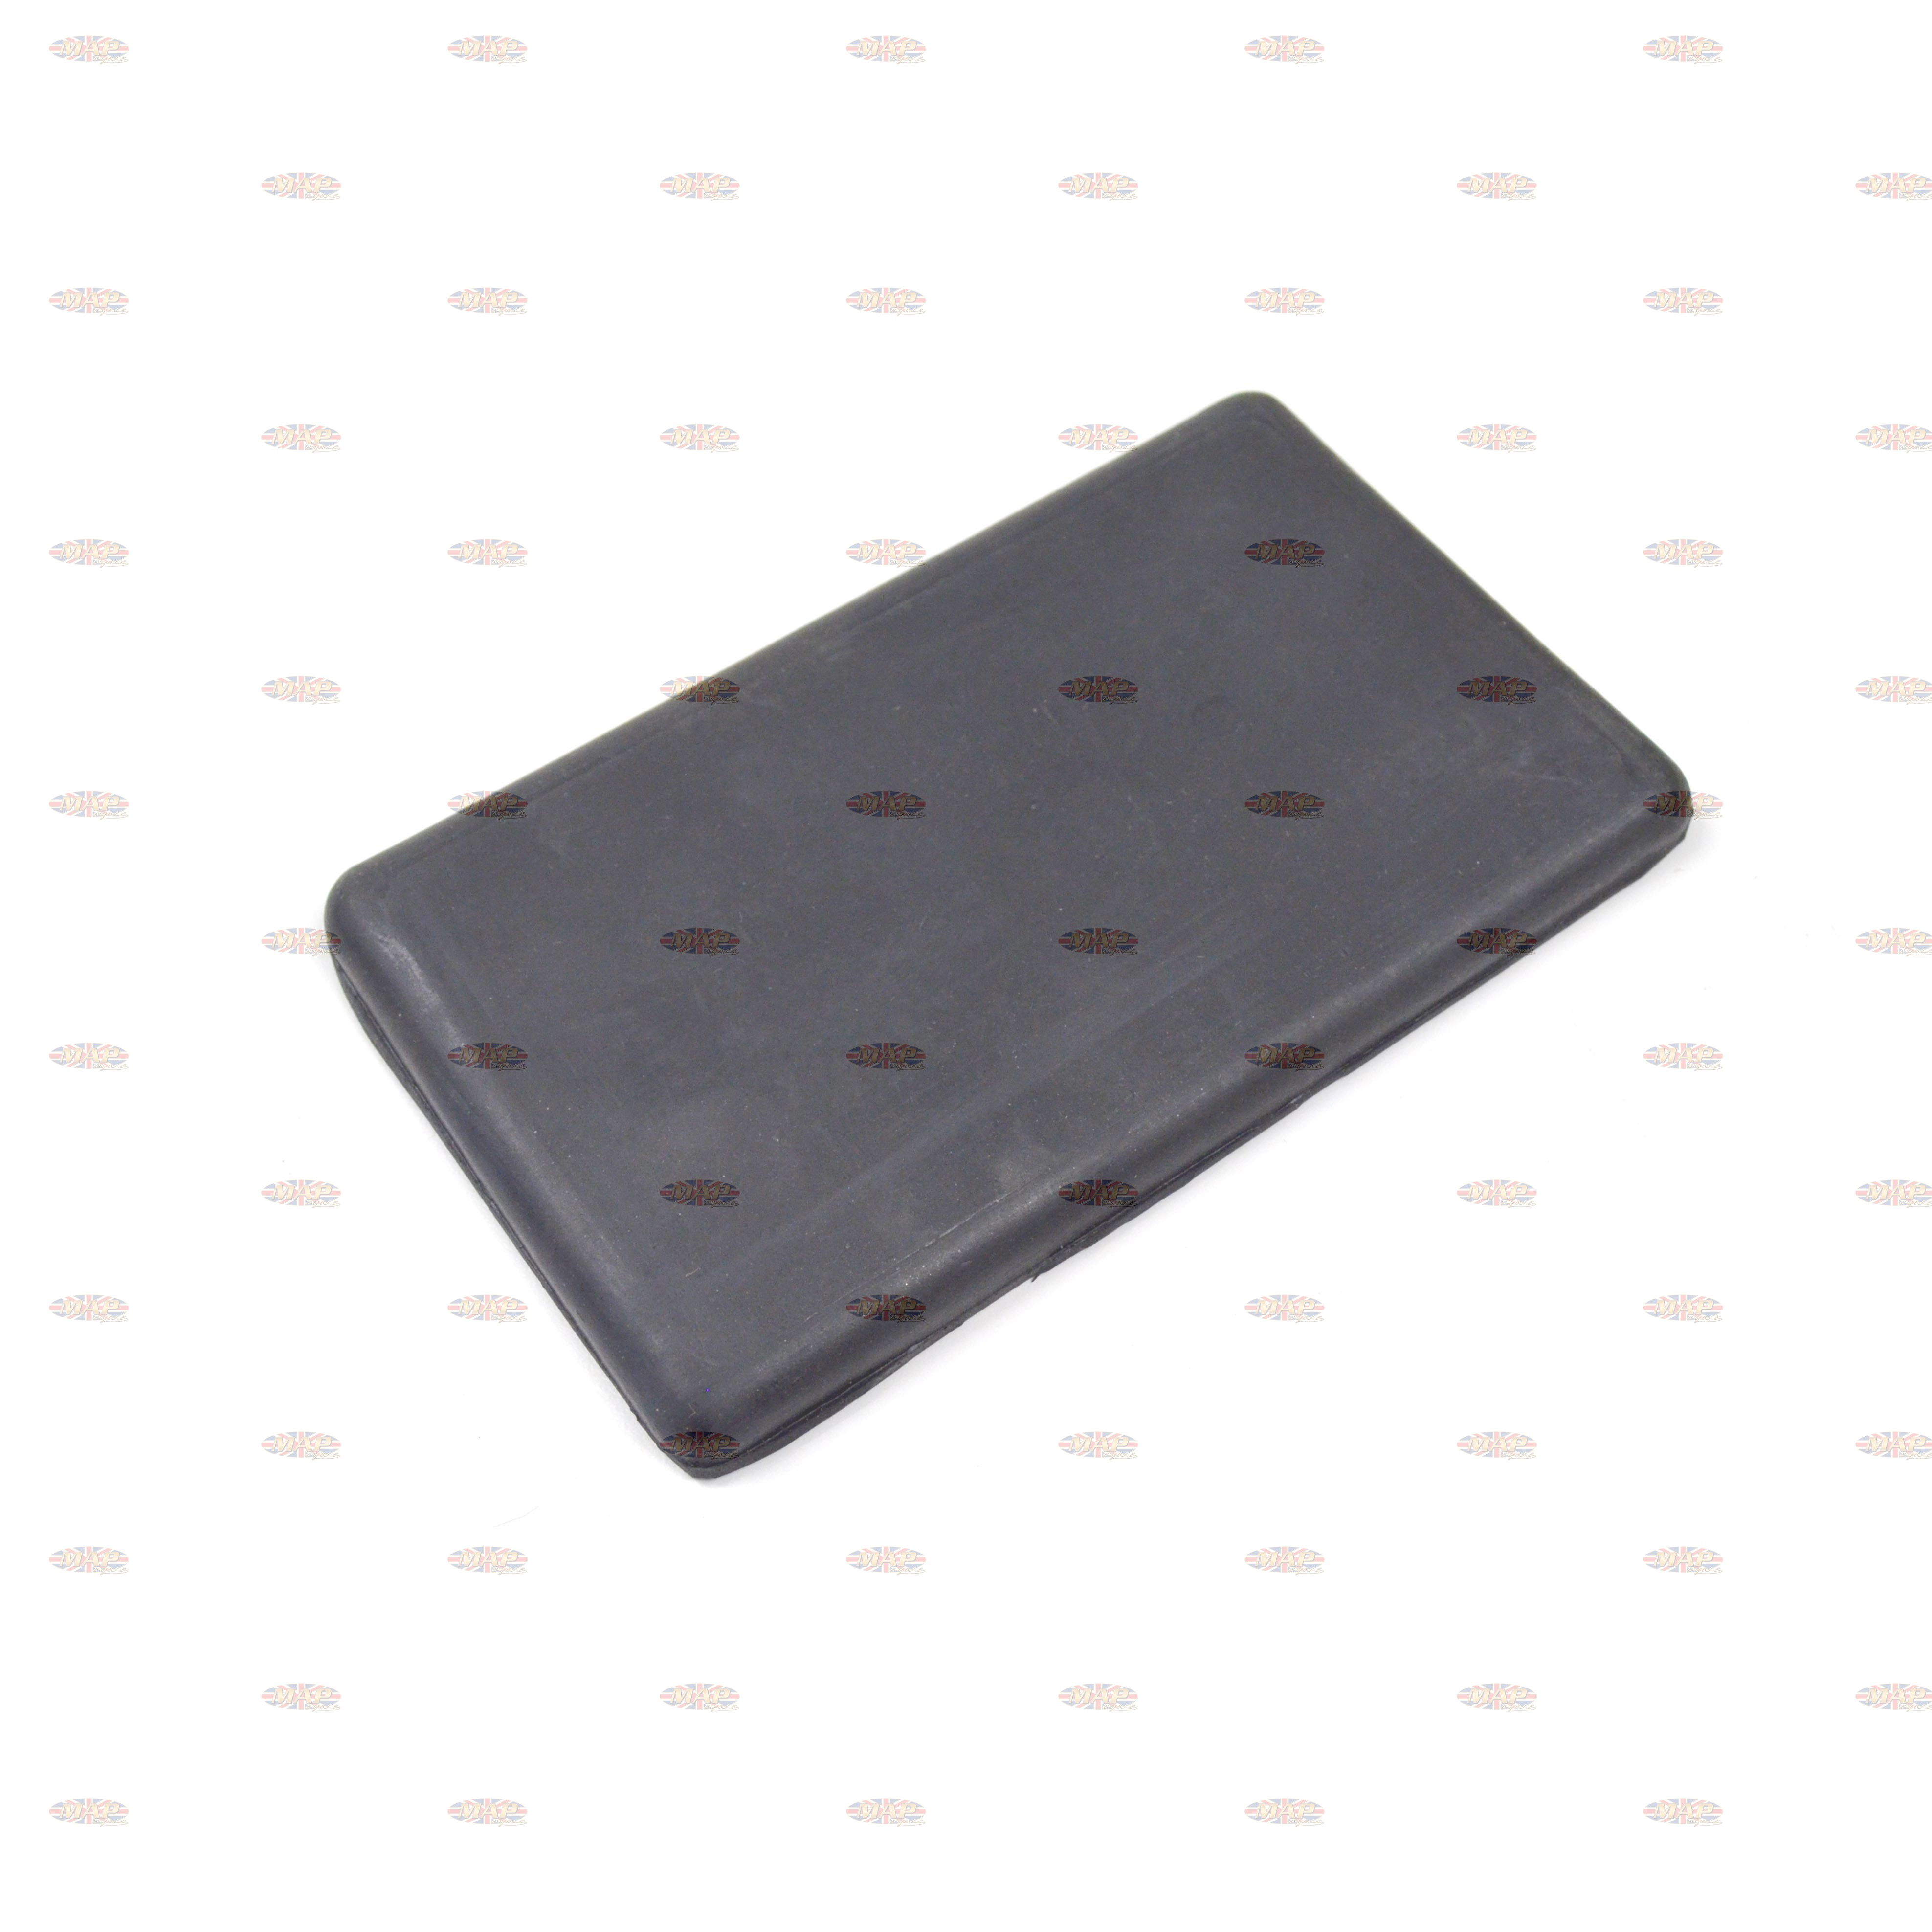 Triumph BSA Battery Support Tray Rubber Pad  82-8091